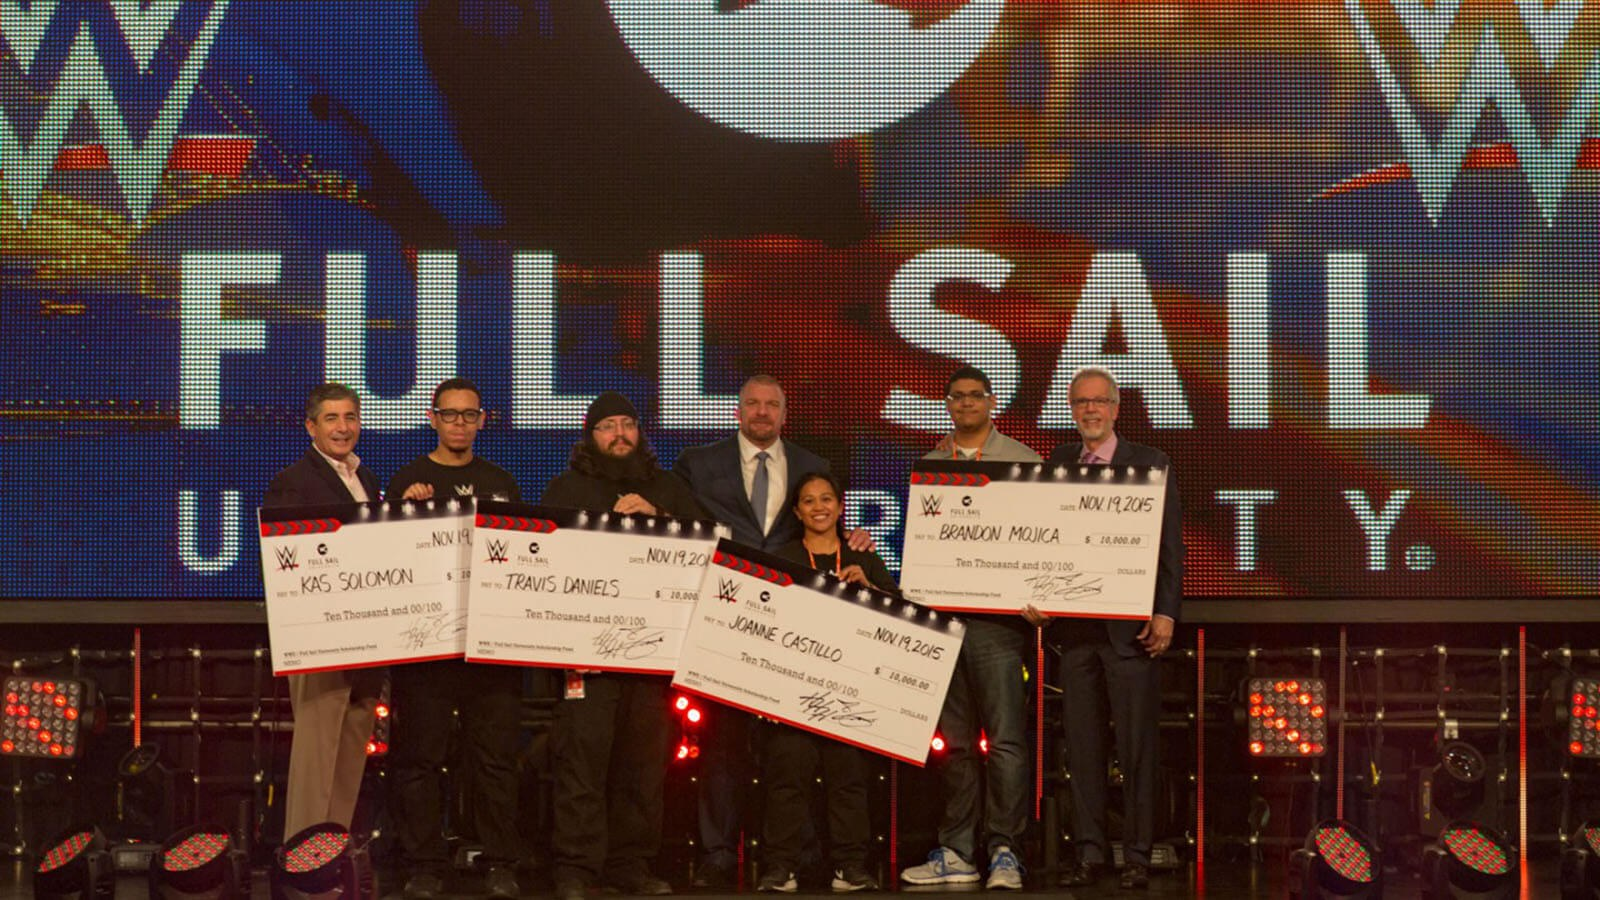 WWE® Awards $180,000 in Scholarships to Full Sail University Students - Hero image